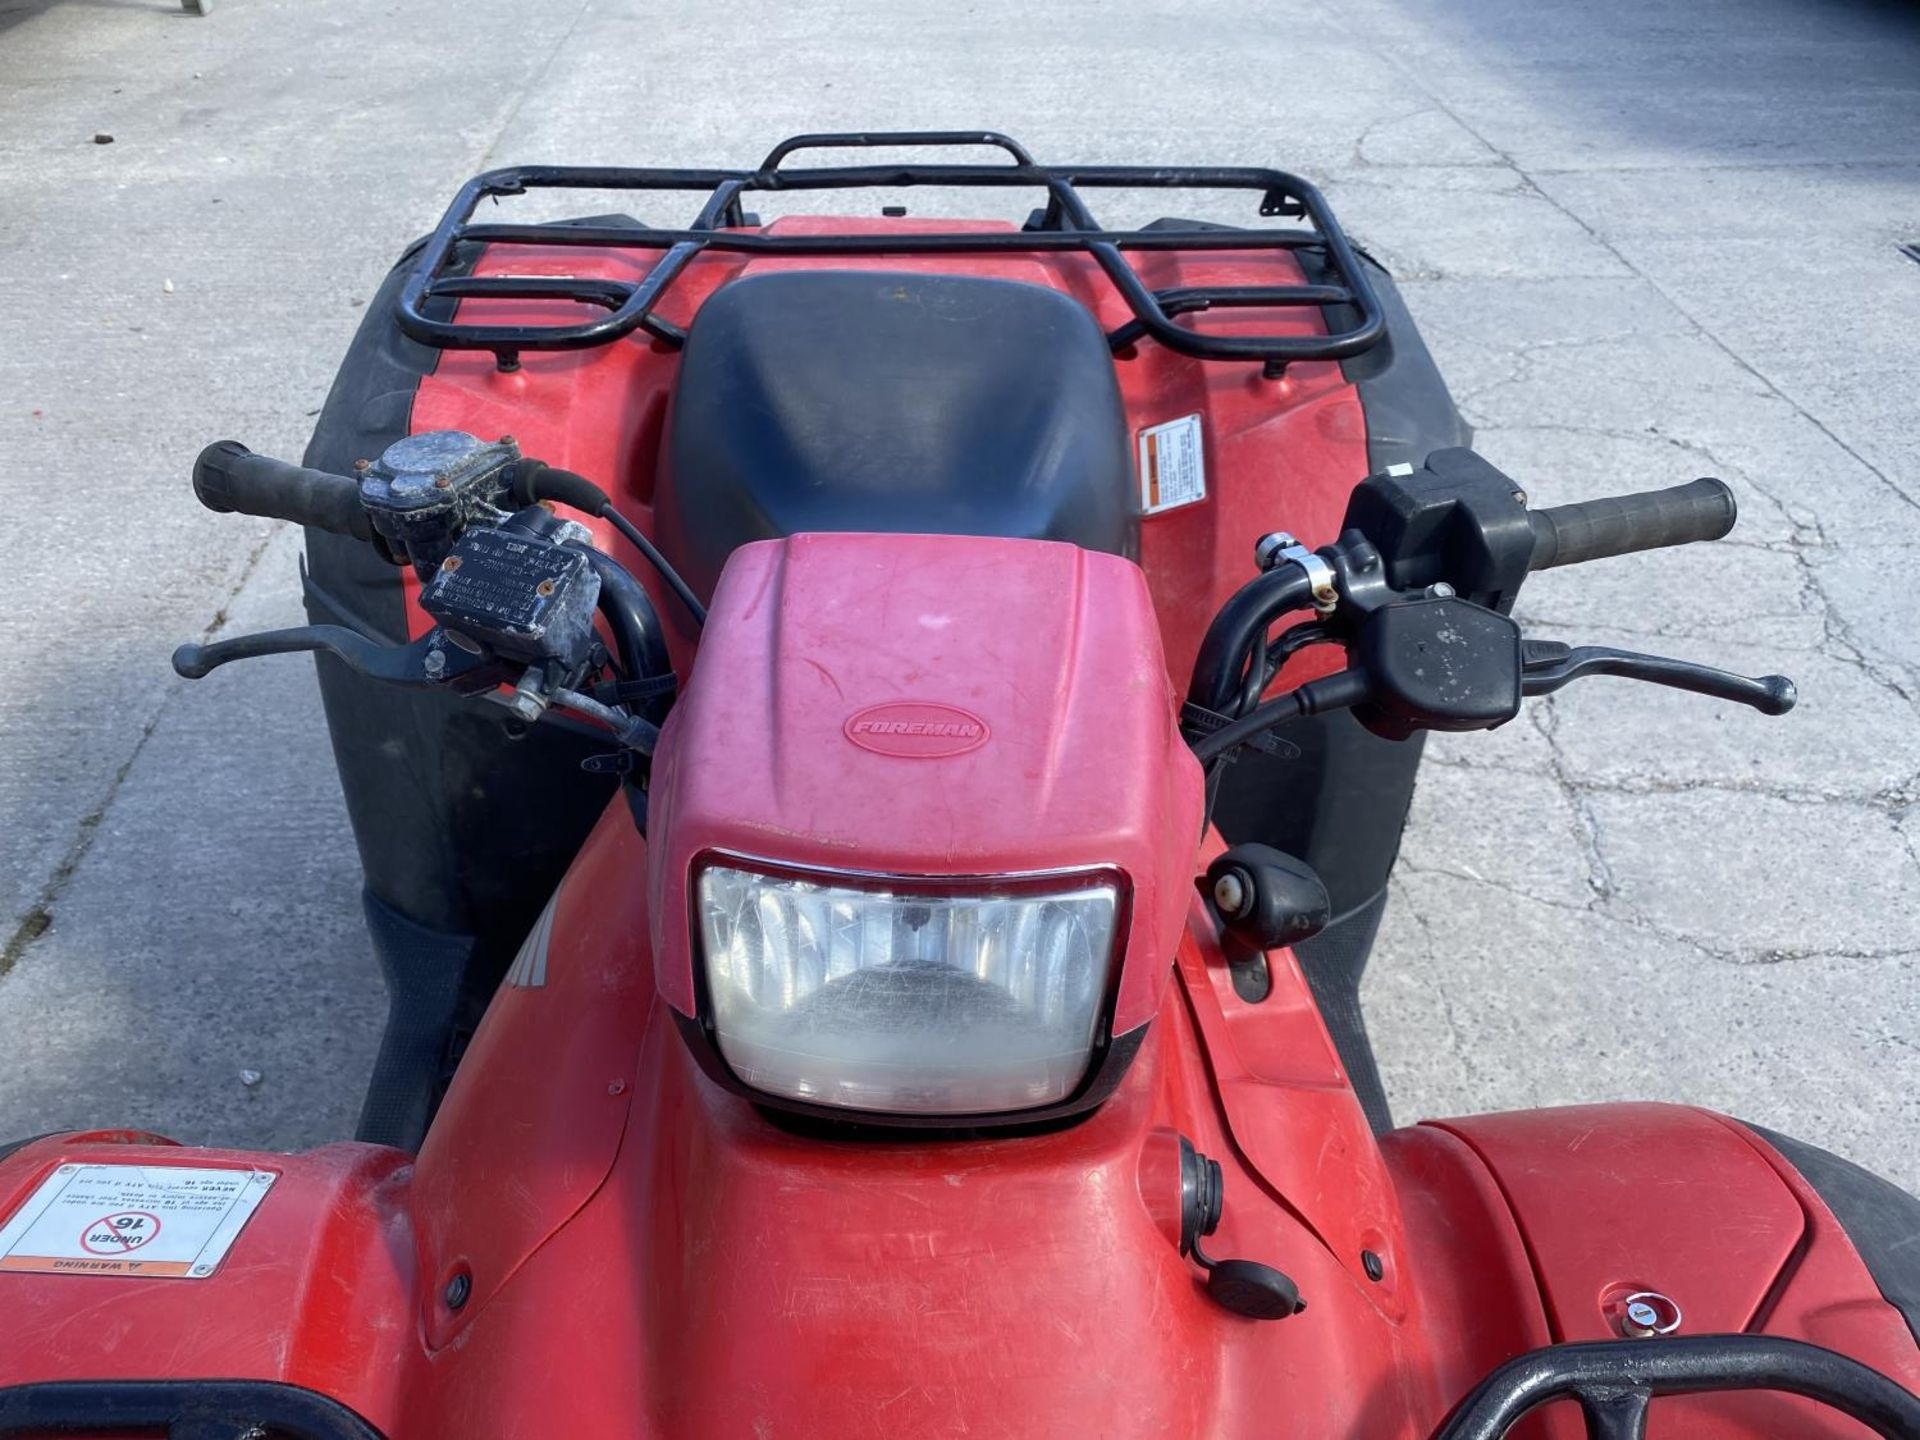 A HONDA TRX FOREMAN 500 CC QUAD BIKE - SEE VIDEO OF VEHICLE STARTING AND RUNNING AT https://www. - Image 4 of 8